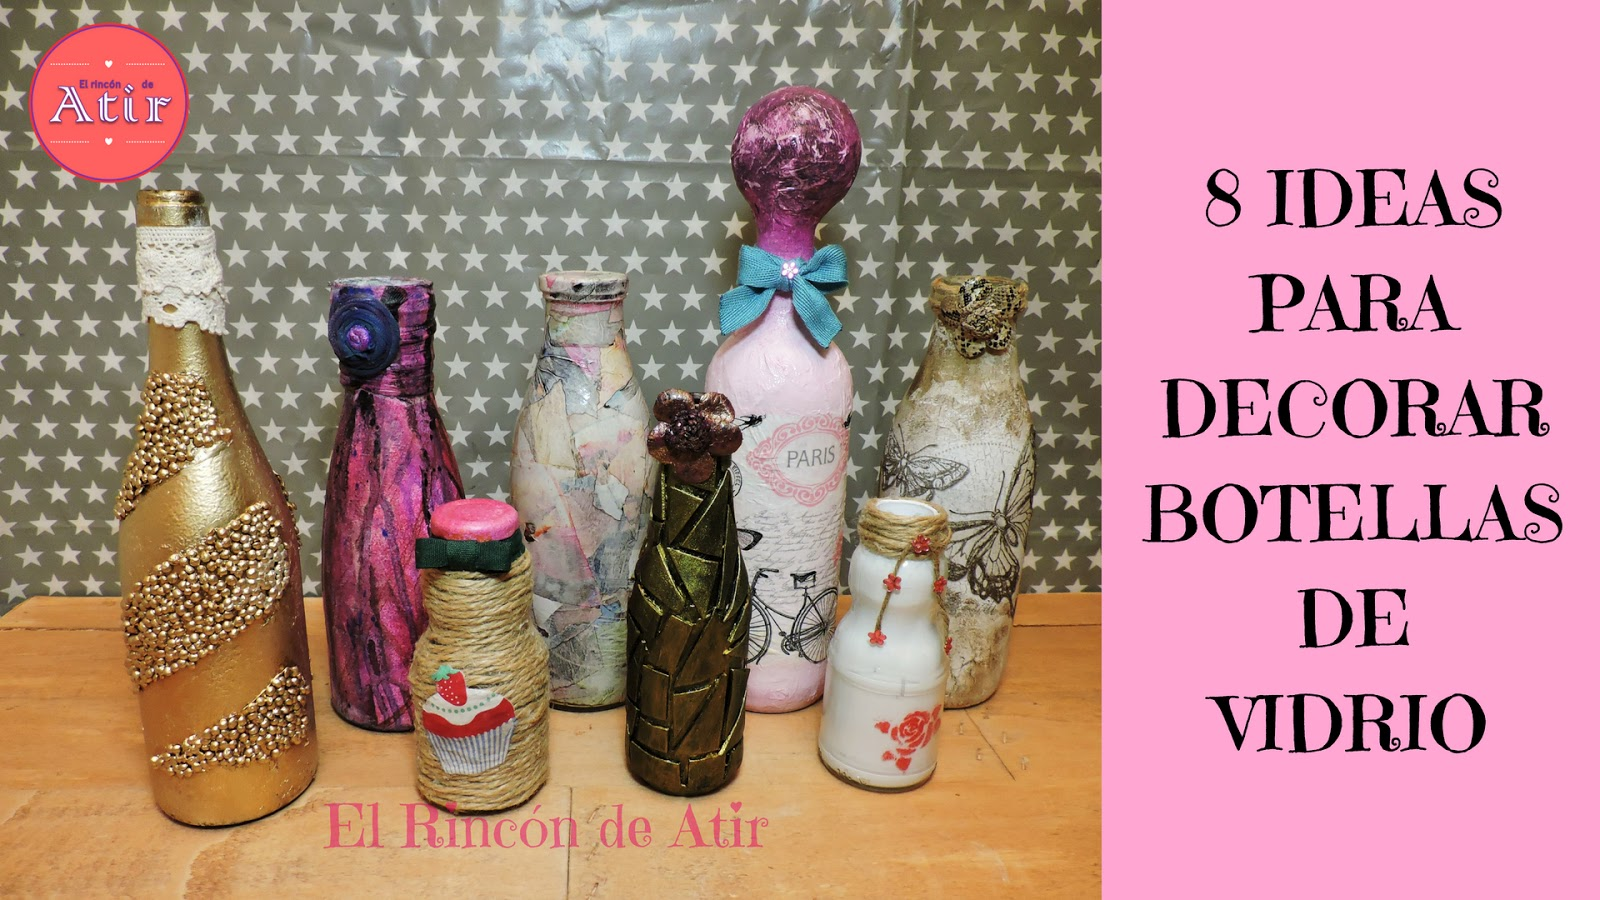 El Rincon De Atir 8 Ideas Para Decorar Botellas De Vidrio - Decorar-botellas